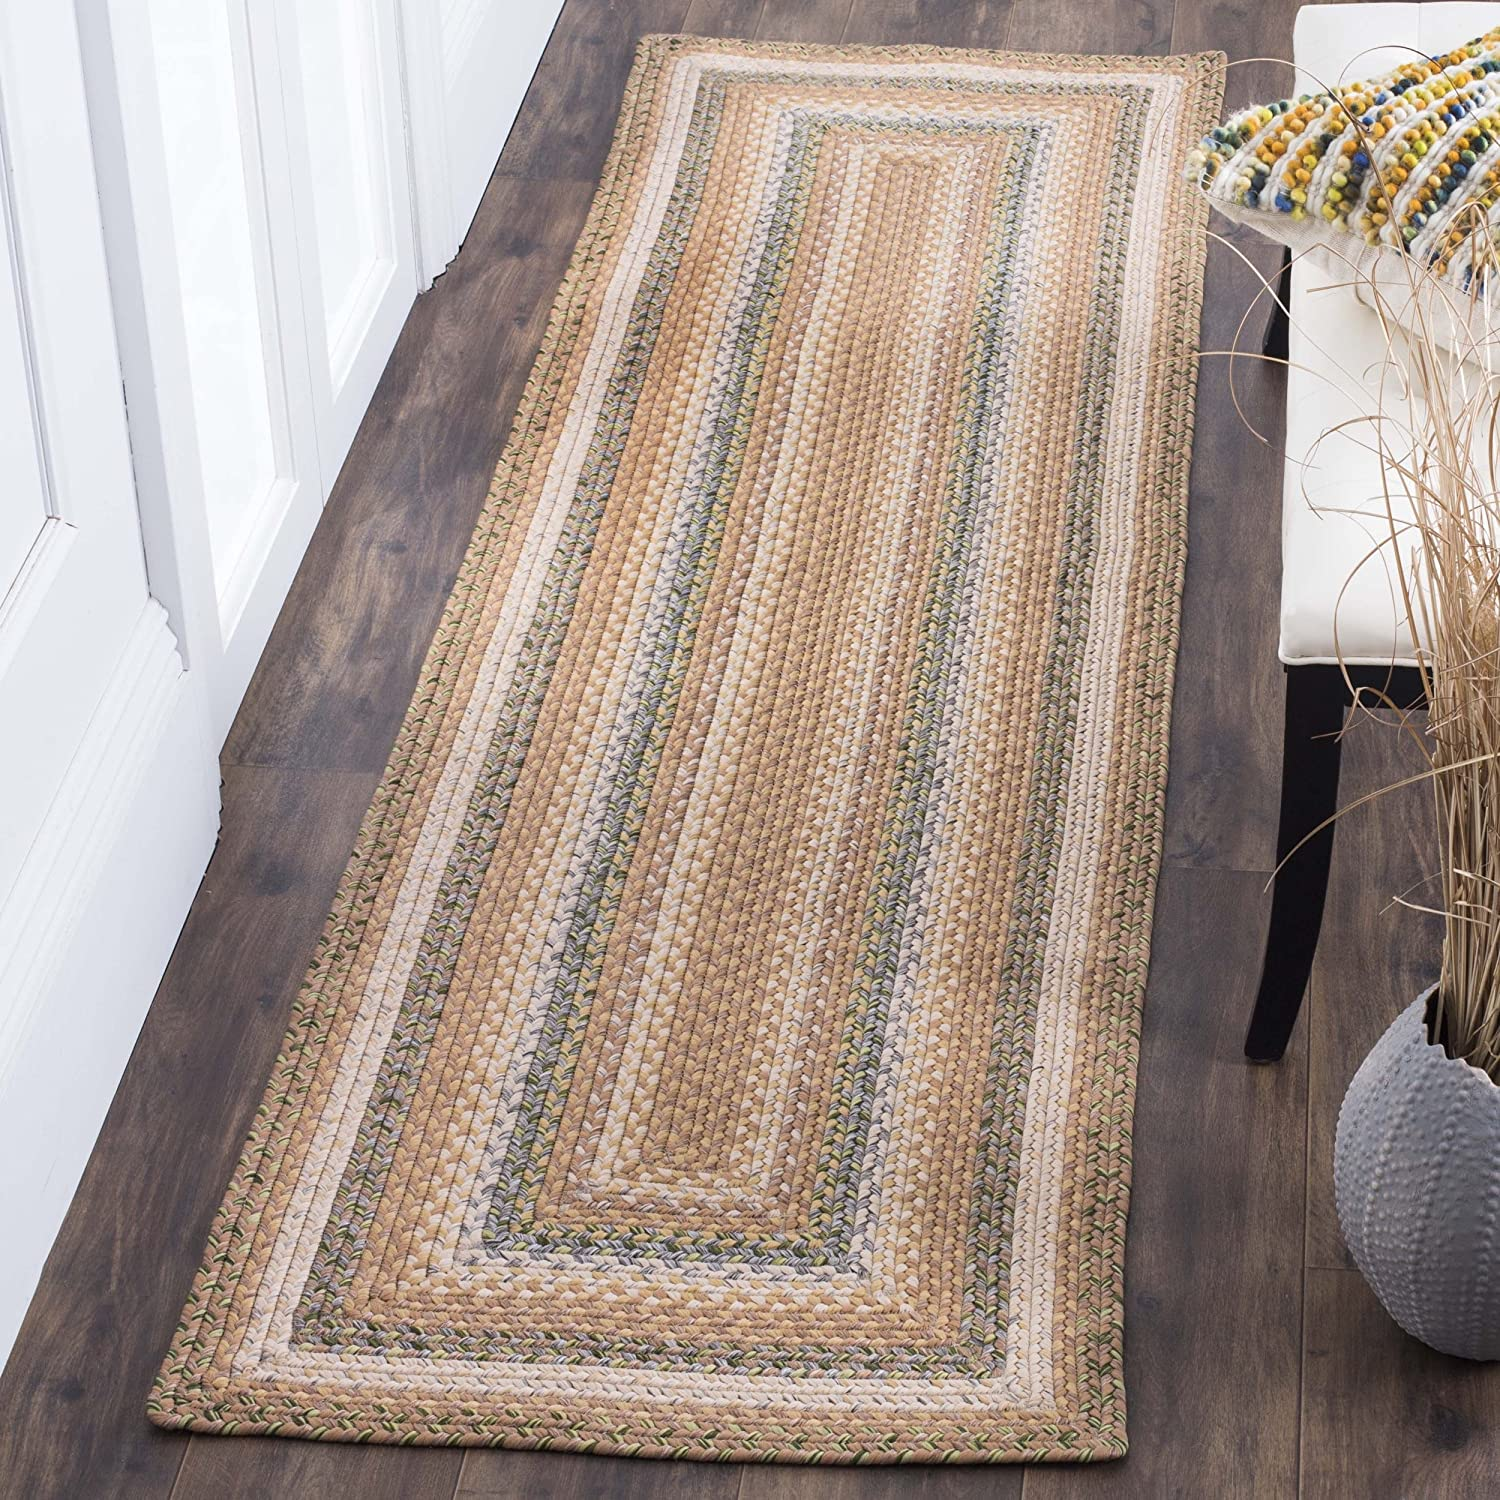 Safavieh Braided Collection BRD314A Hand Woven Tan and Multi Runner, 2 feet 3 inches by 8 feet (2'3 x 8') BRD314A-28